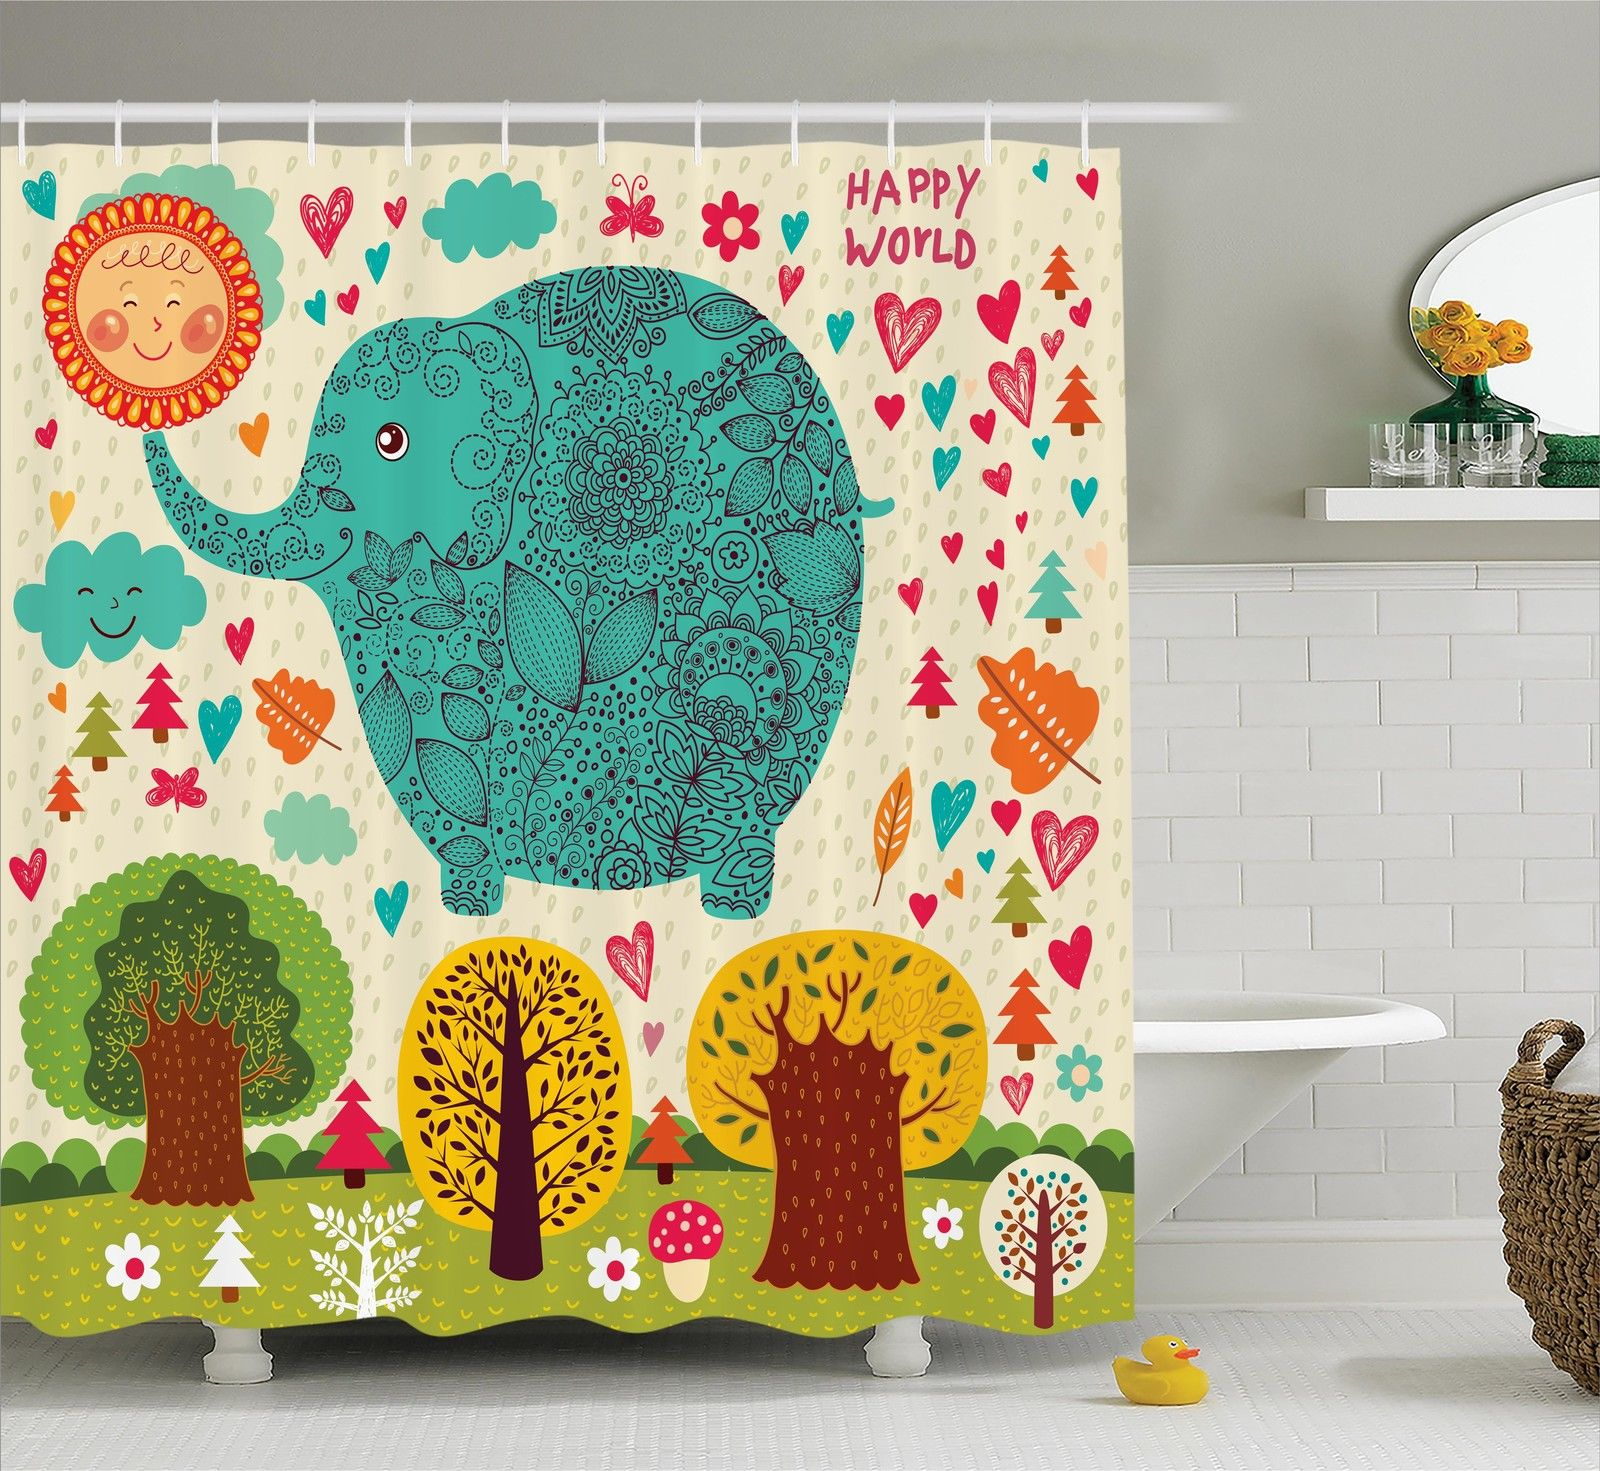 Elephants Decor  Illustration With Elephant Happy World Trees Leaves Hearts Love Children Art, Bathroom Accessories, 69W X 84L Inches Extra Long, By Ambesonne